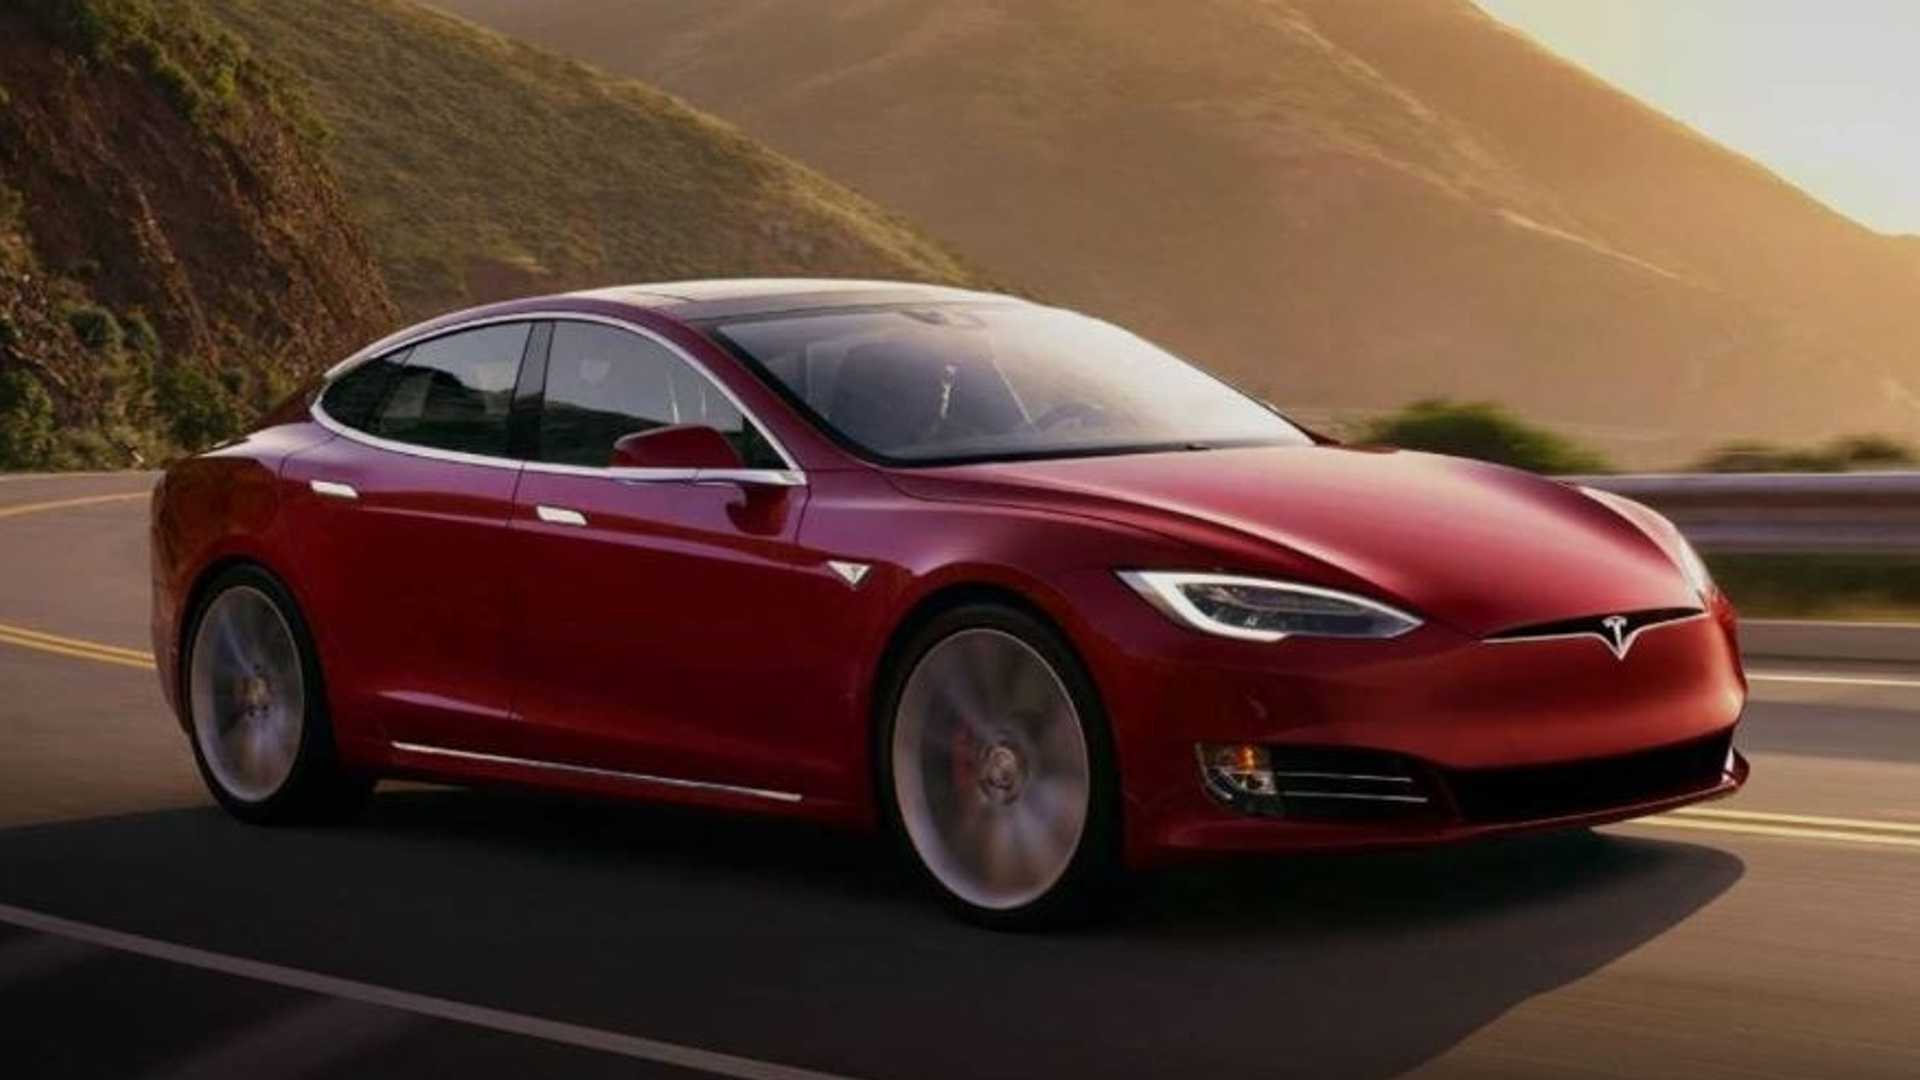 The People Have Spoken: Tesla Model S Is the US' New Dream Car